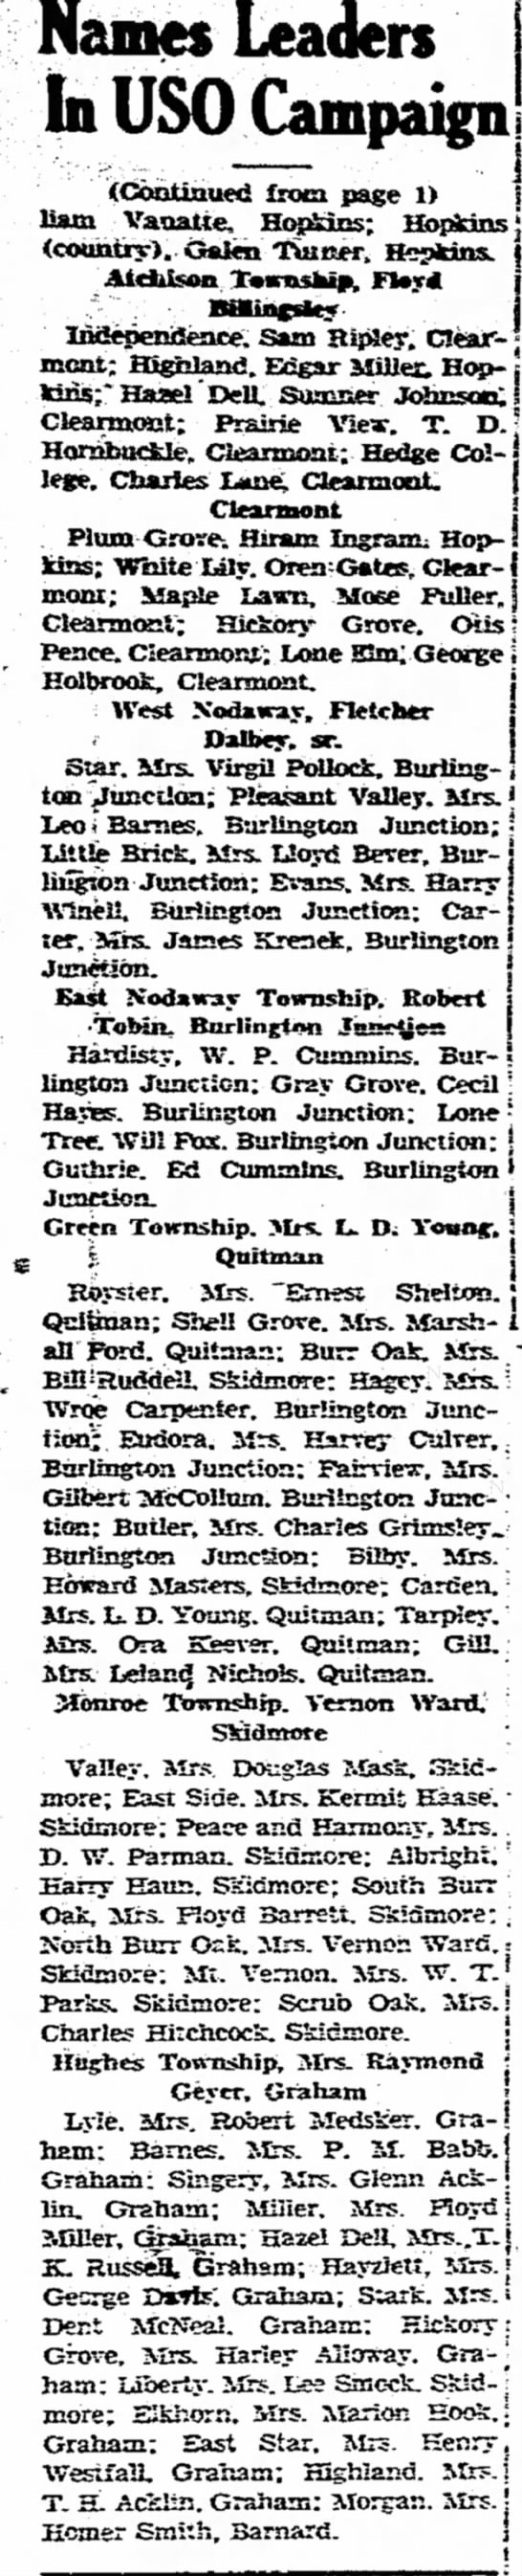 USO Grandma Jul 16 1942 pg 2 Maryville Daily Forum - Names Leaders In USO Campaign! meat: Highland....